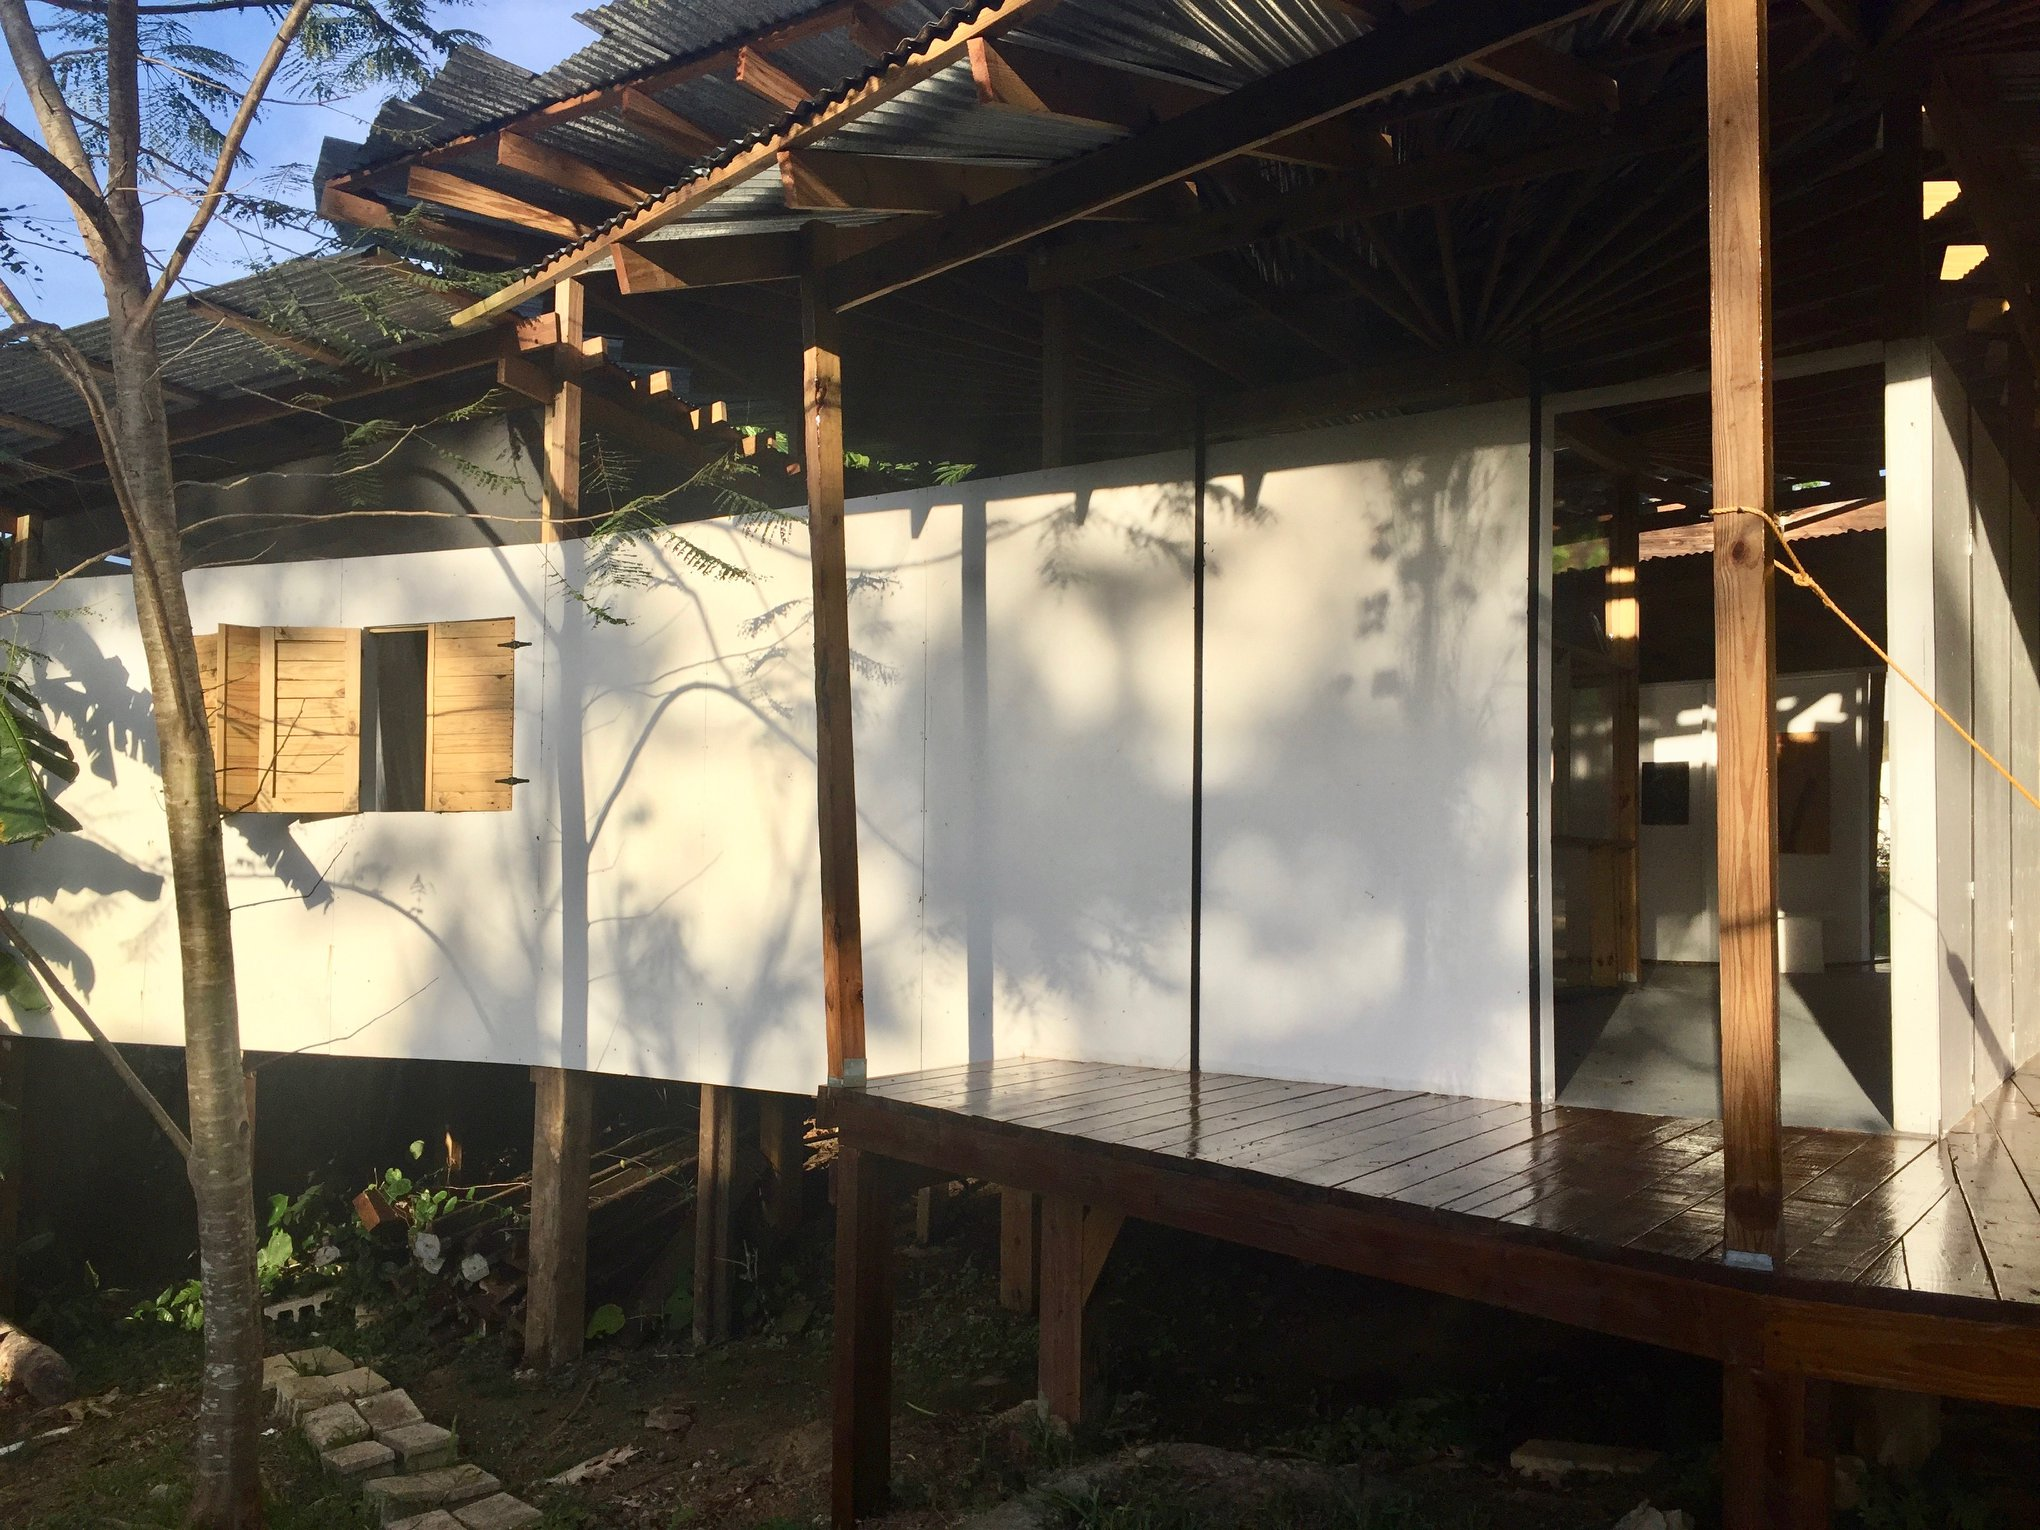 Papo Colo_Pangea Art Republic_Artist Studio in the Rainforest_Curator Guest Room Exterior.jpg